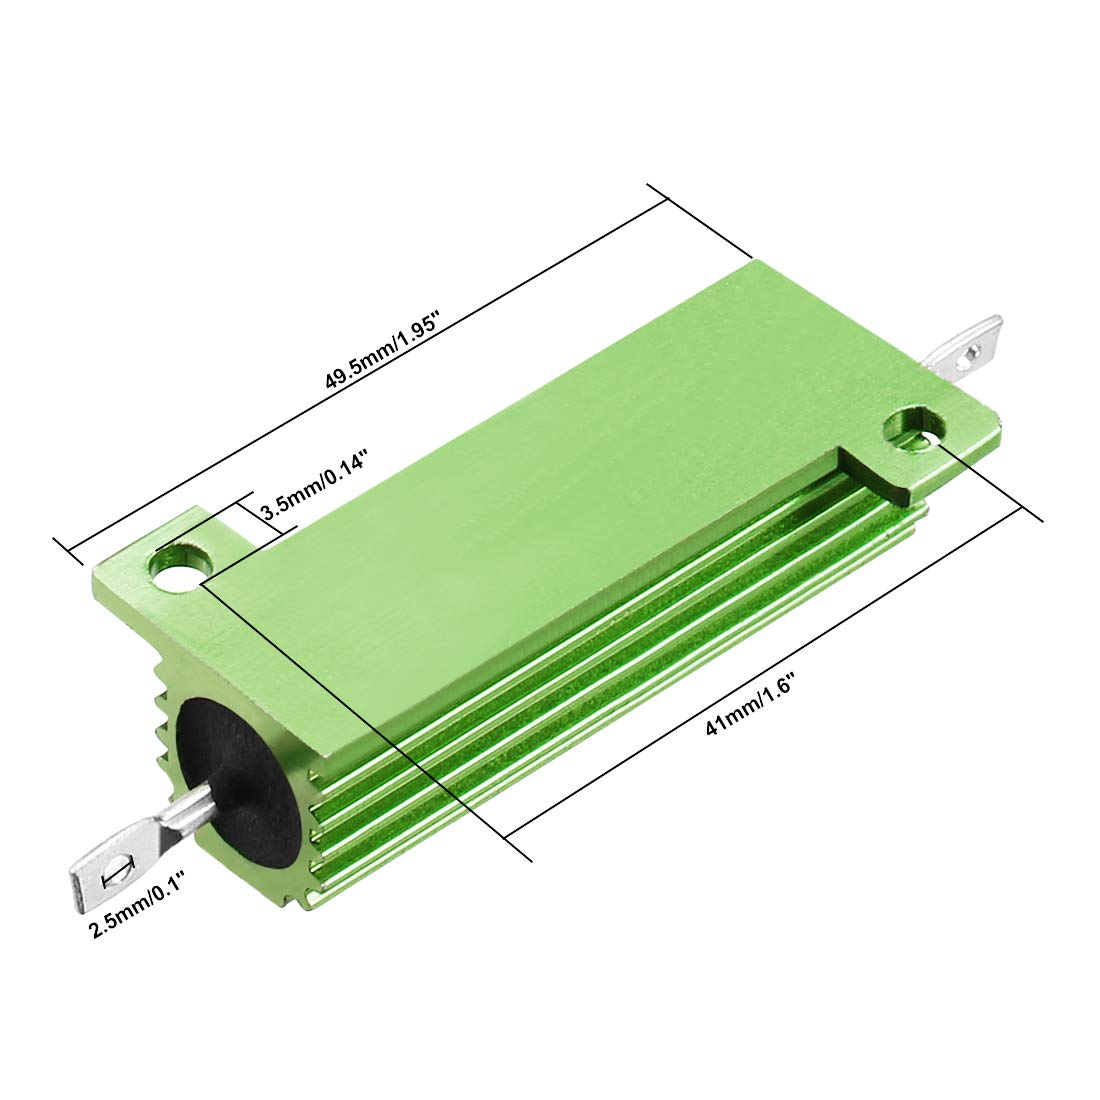 sourcingmap 50W 0.1 Ohm 5/% Aluminum Housing Resistor Screw Tap Chassis Mounted Aluminum Case Wirewound Resistor Load Resistors Green 2 pcs